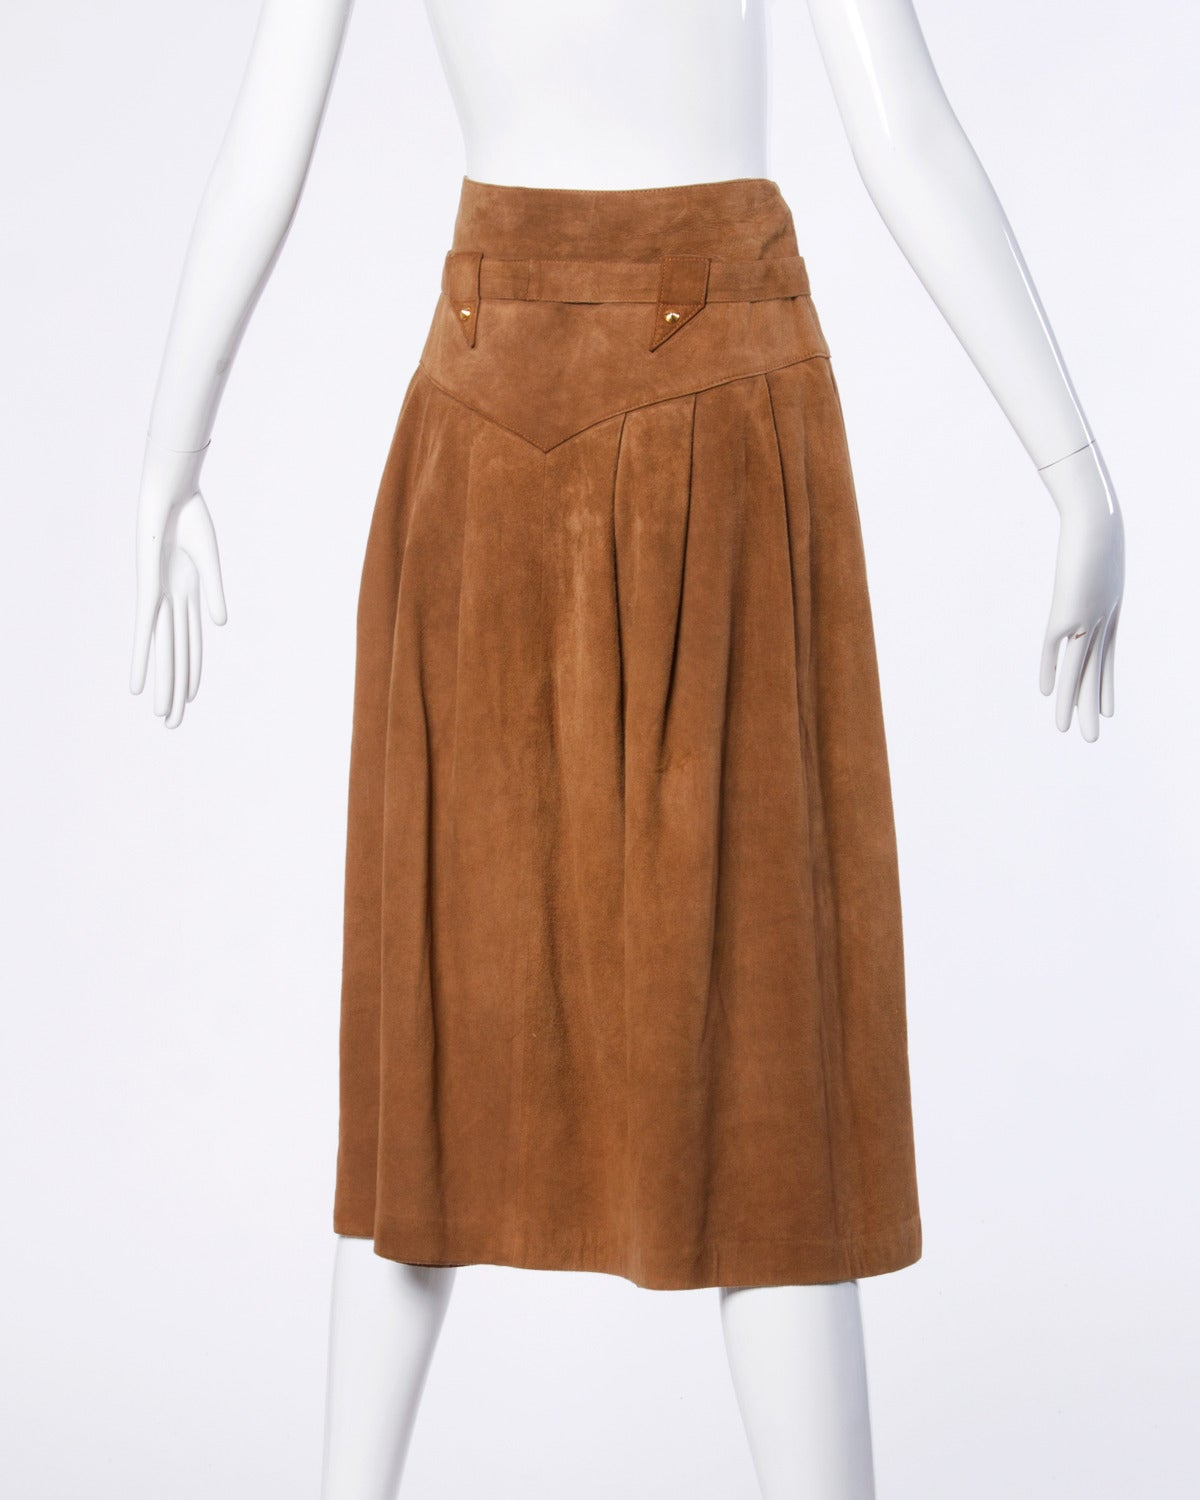 Claude Montana pour Ideal Cuir Vintage 1980s 80s Brown Leather Skirt 3